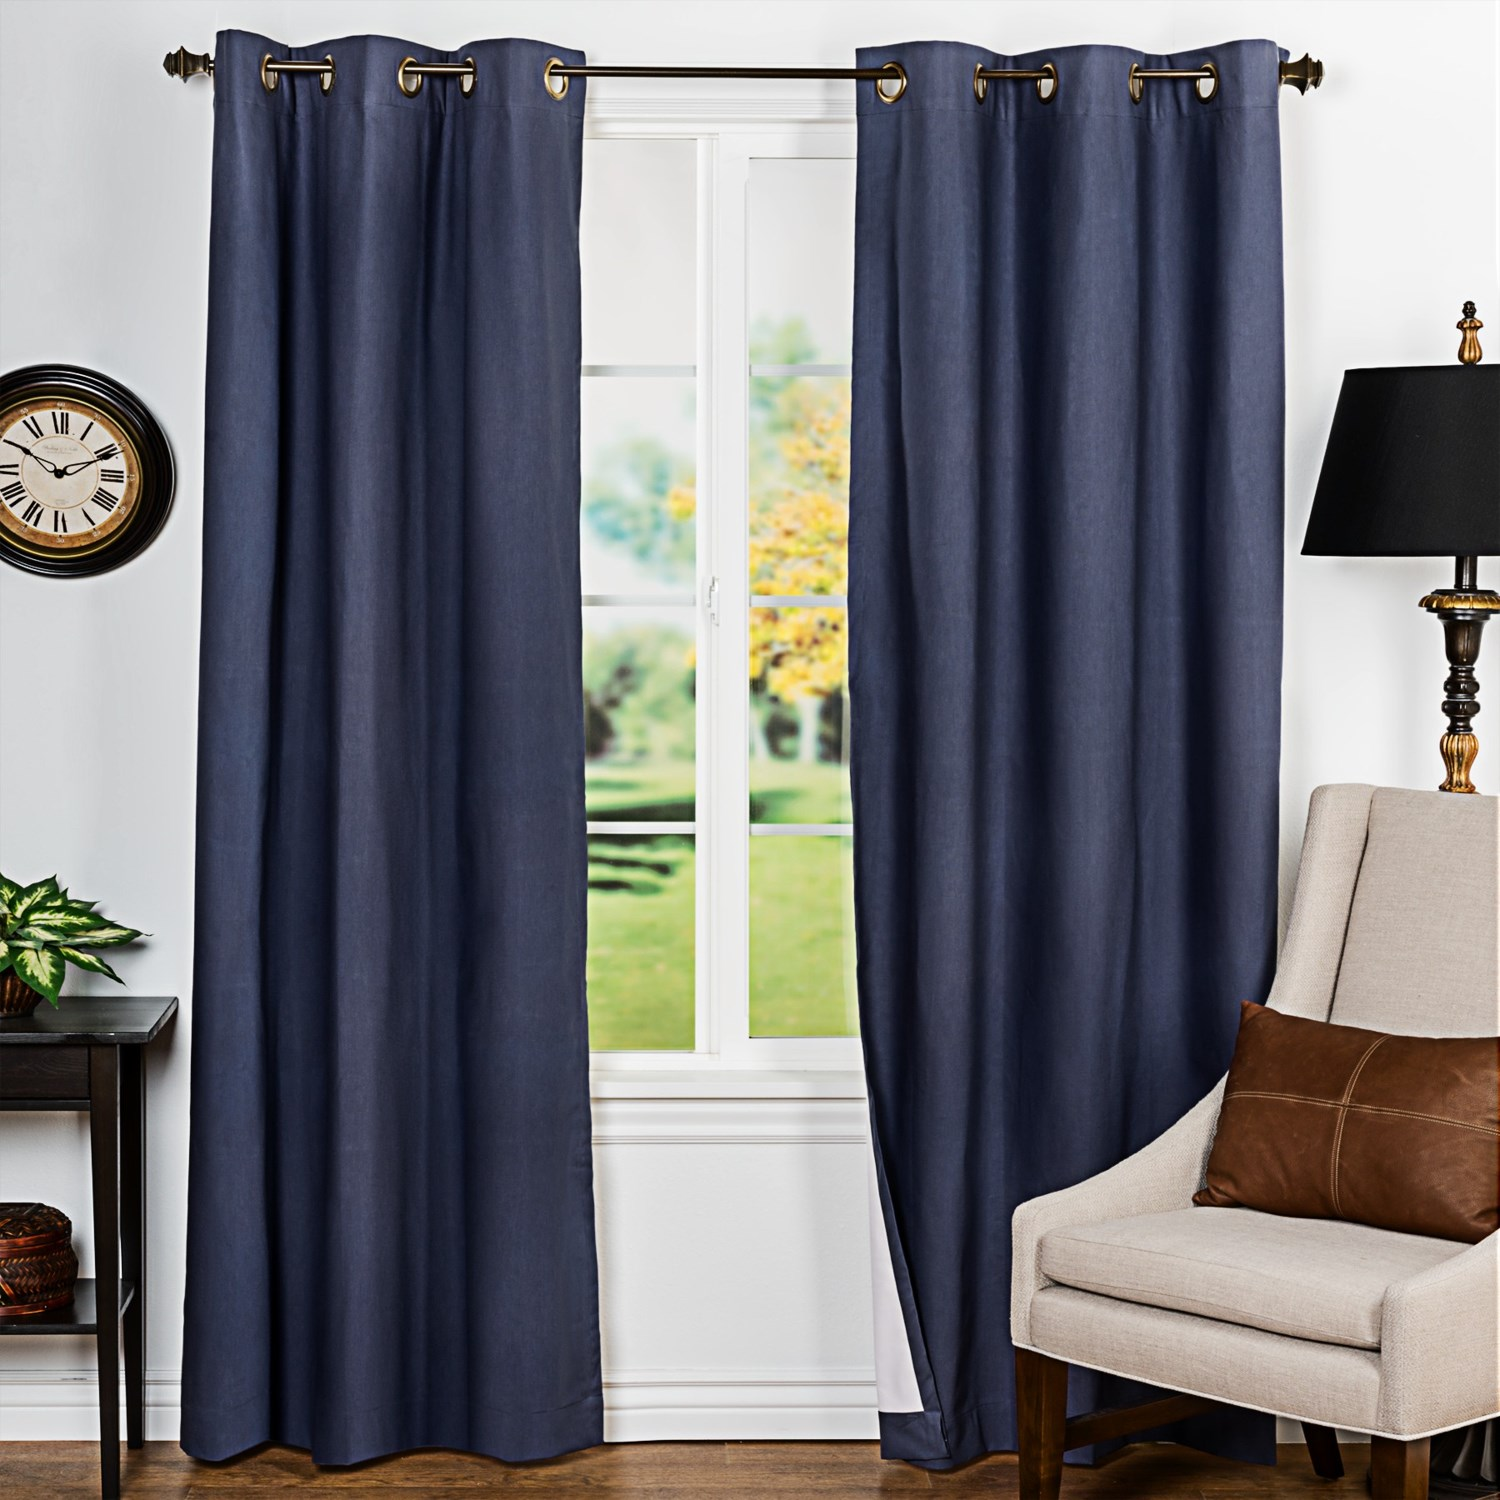 Insulated drapes